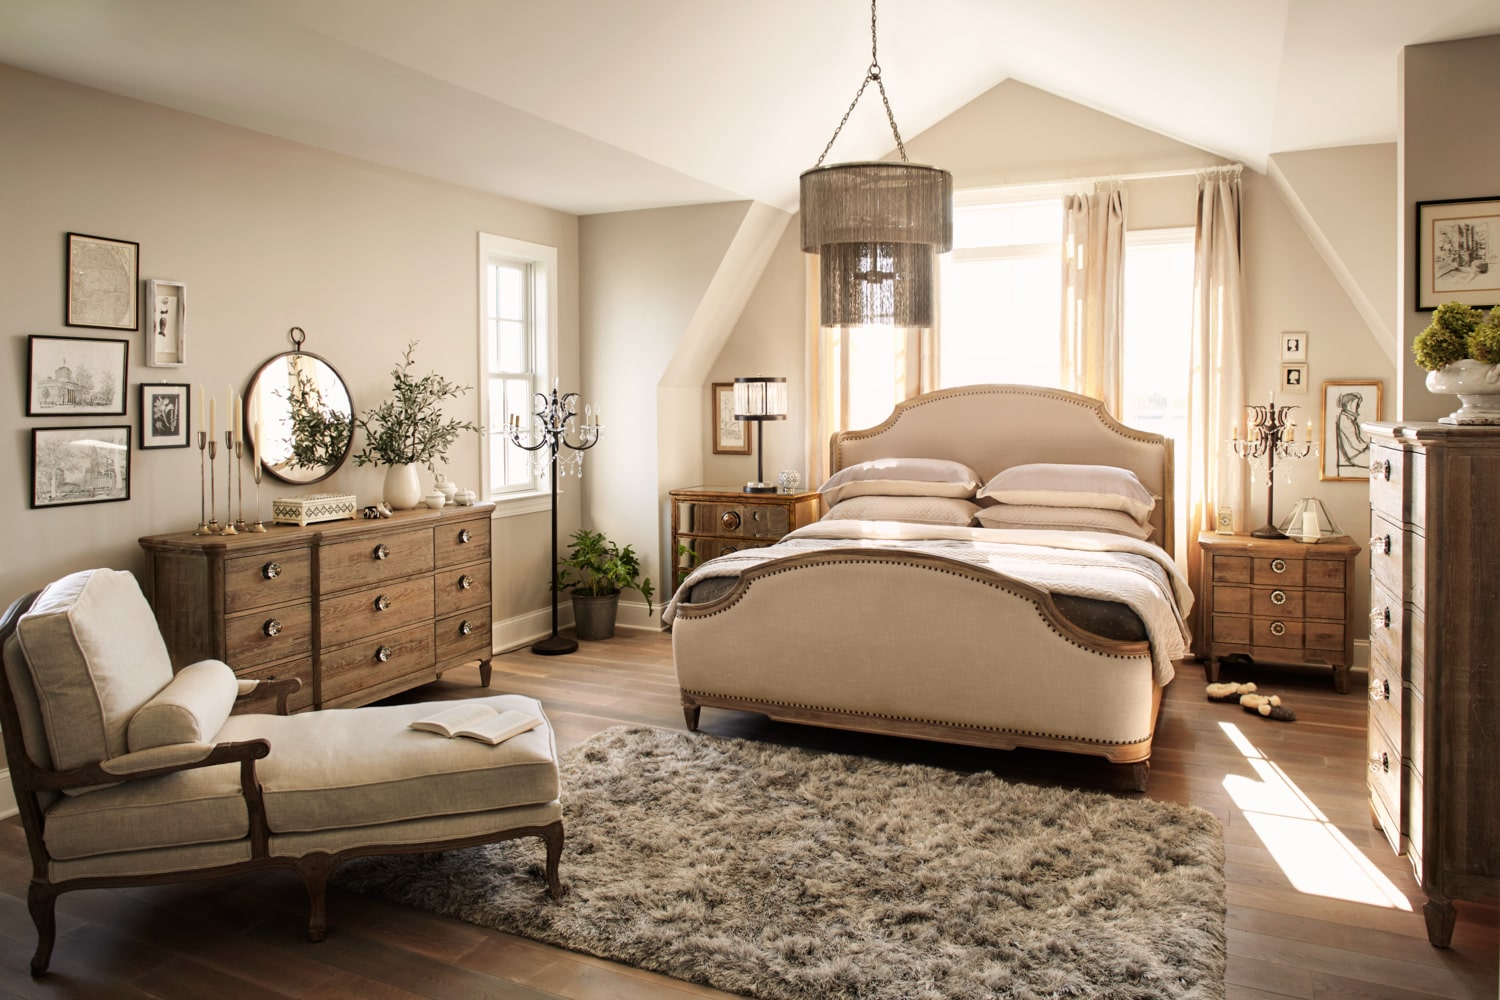 Regents Park 6-Piece Queen Bedroom Set - Oak